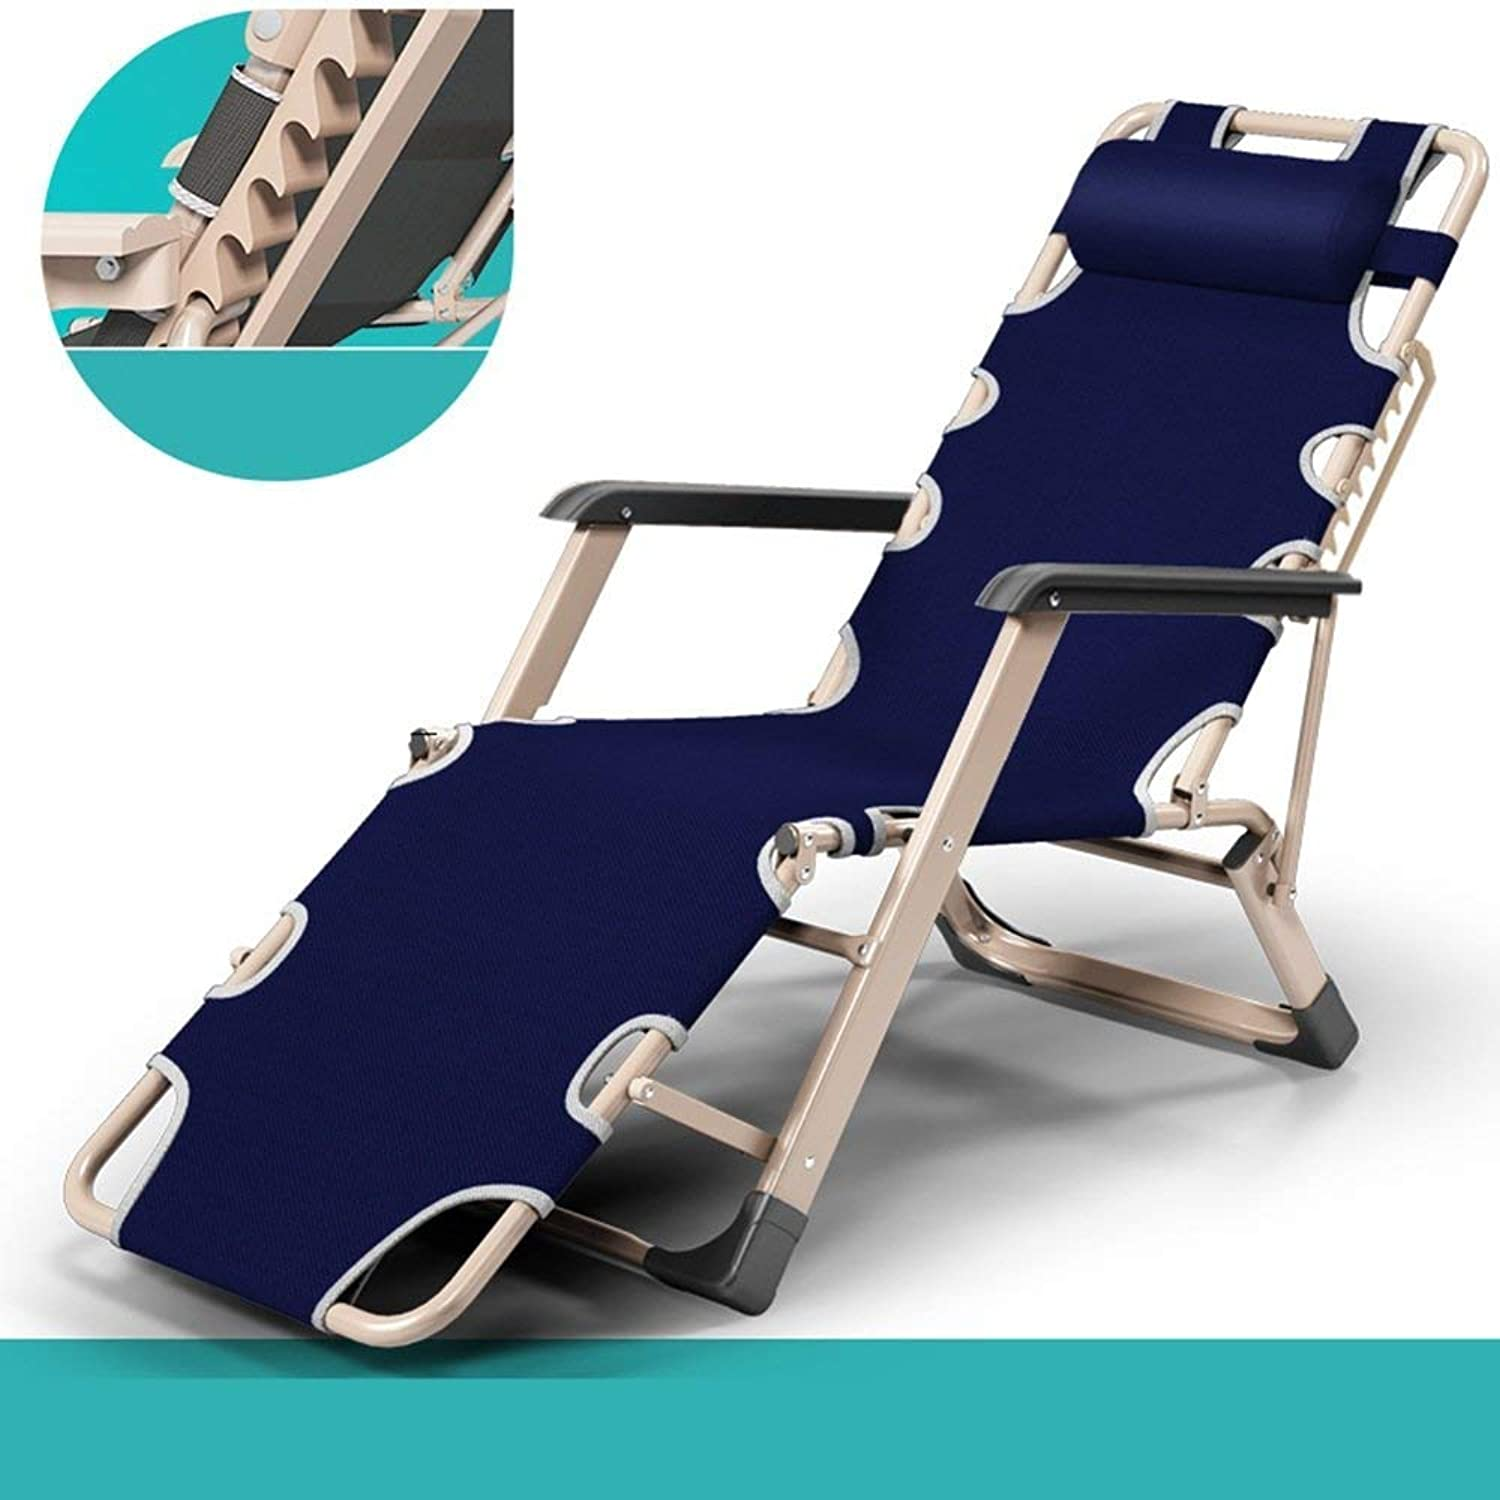 Sofa Beds Foldaway Bed Single Bed Simple Loungers Lunch Break Adult Deckchair Cot (color  bluee)